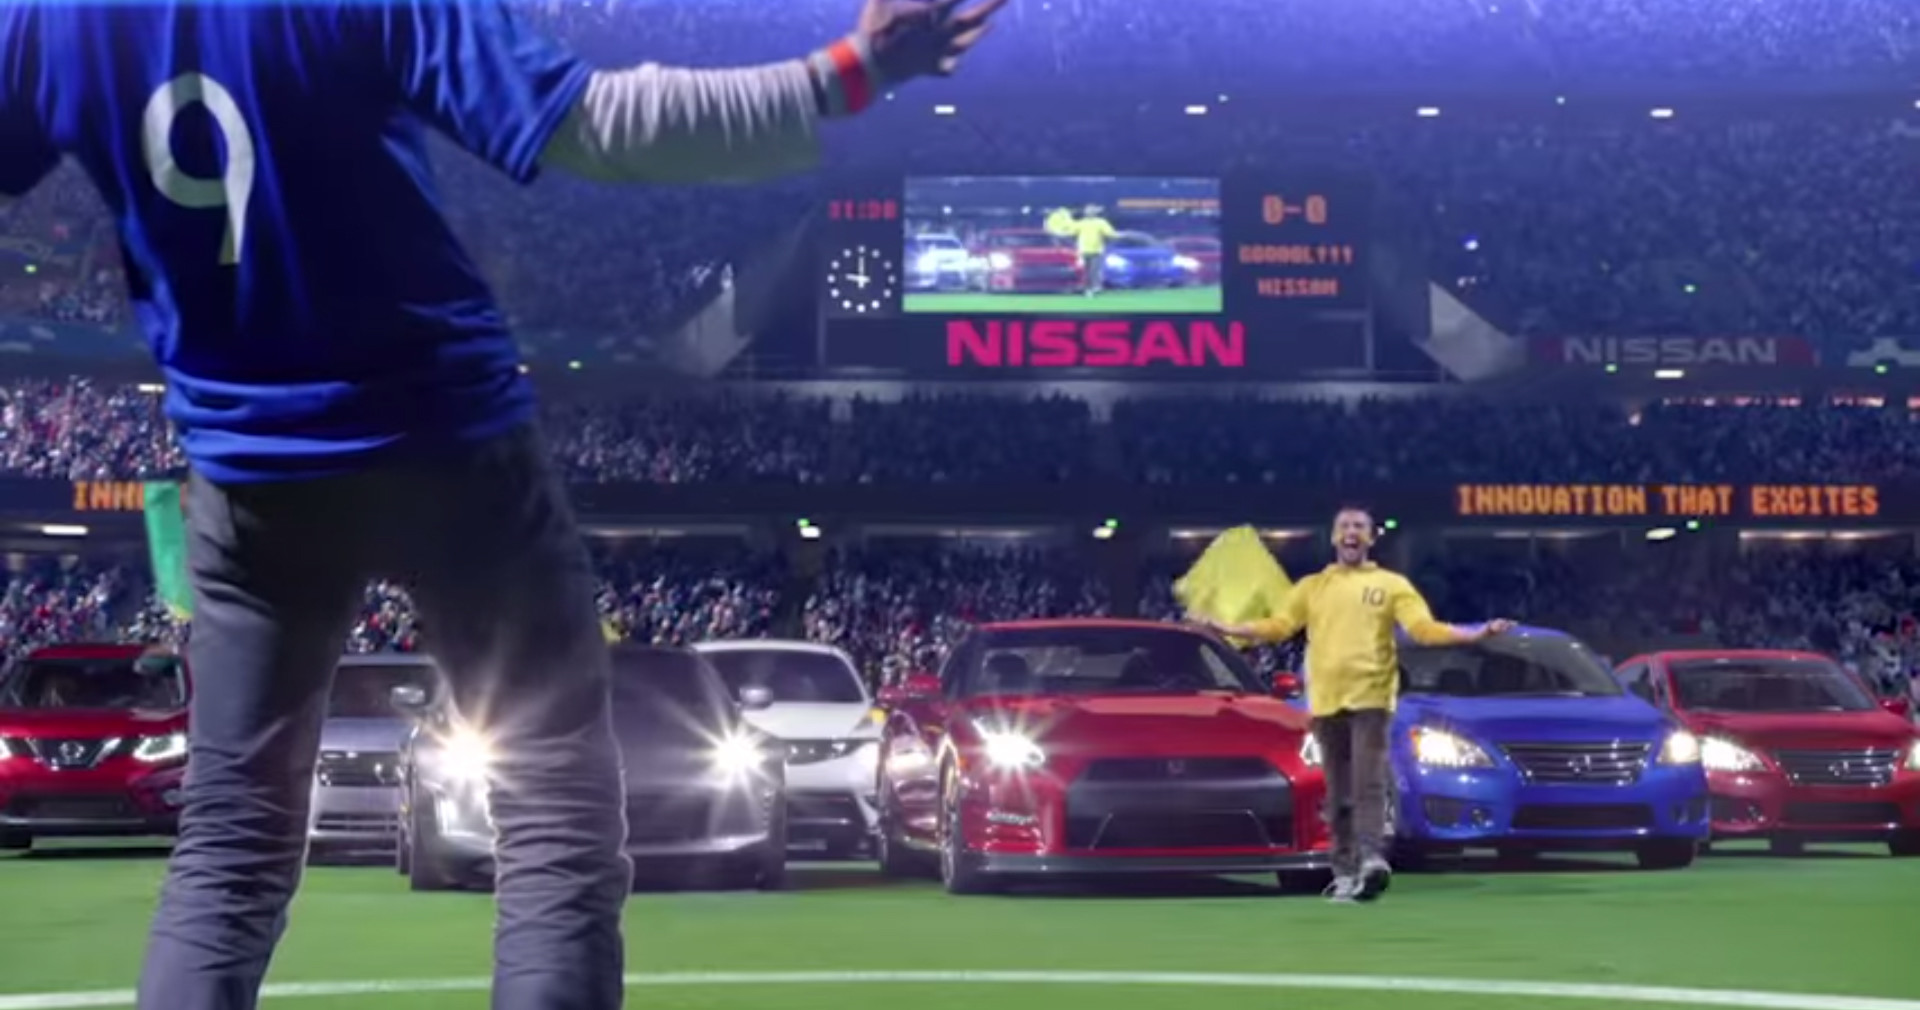 world cup Nissan Face Off Commercial 3d laser scanning